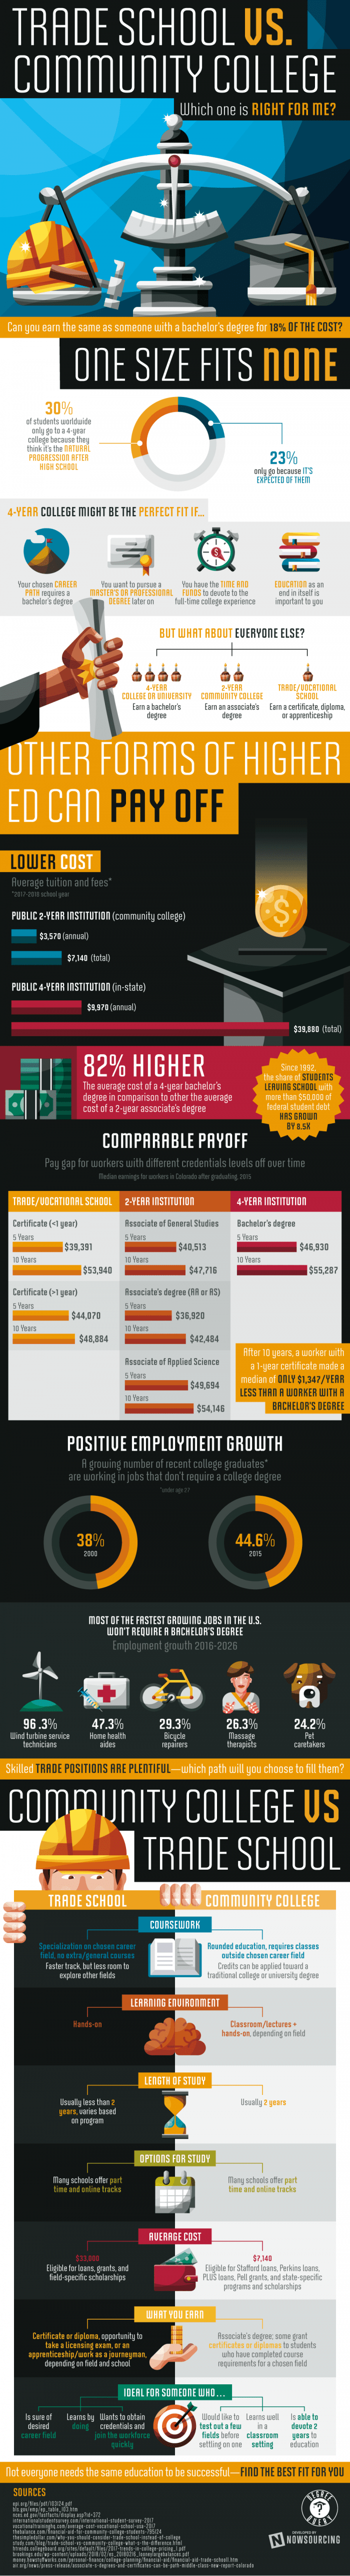 trade school vs comunity college infographic